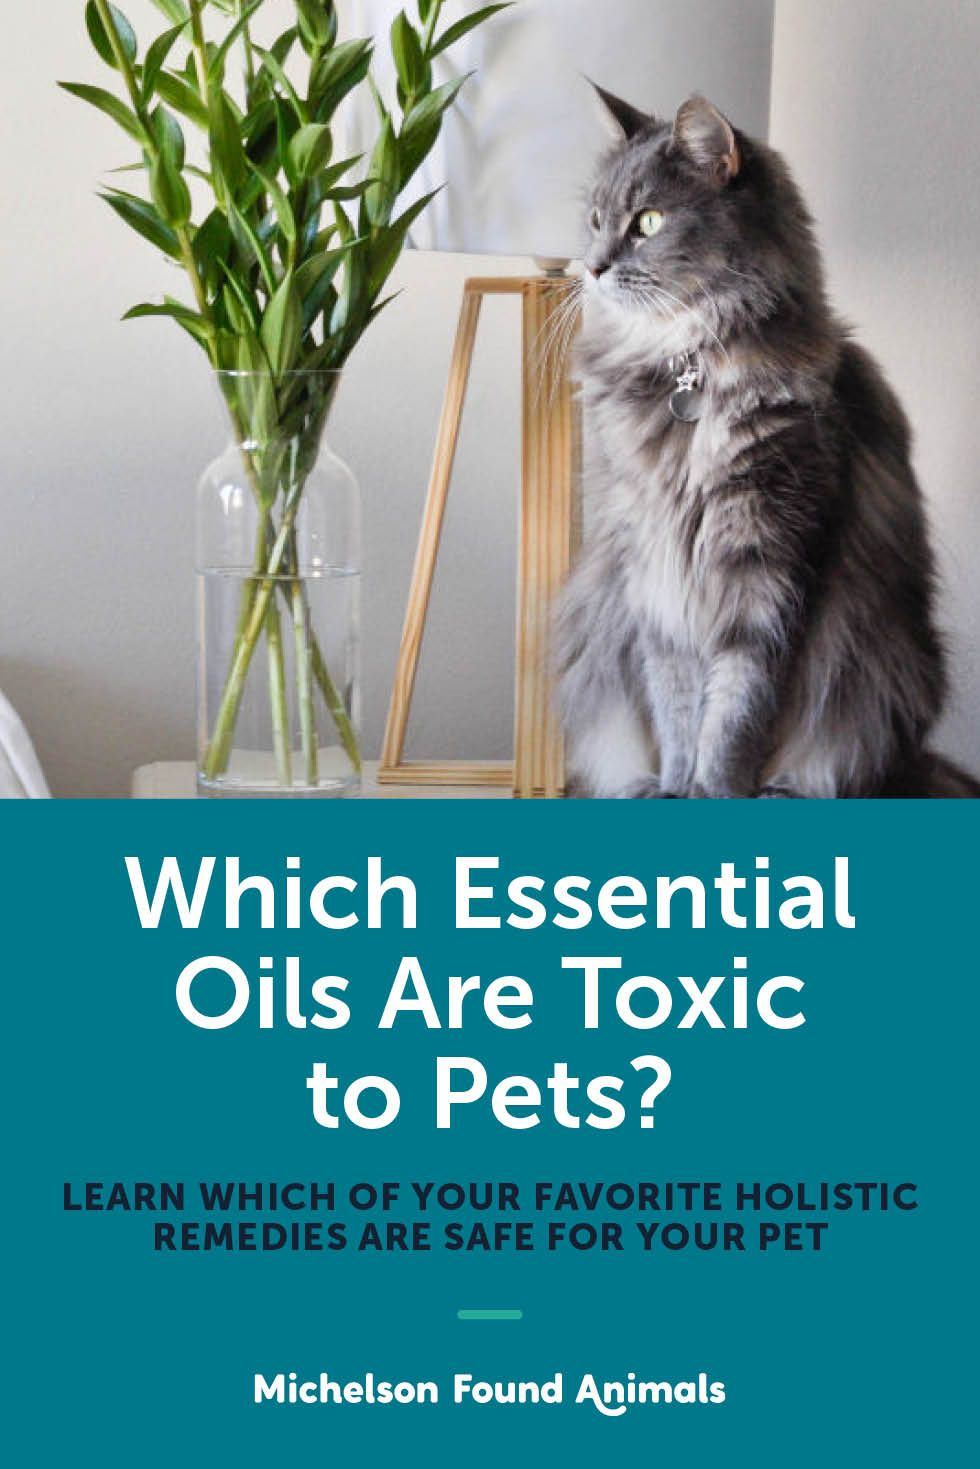 Which Essential Oils Are Toxic to Pets? Essential oils